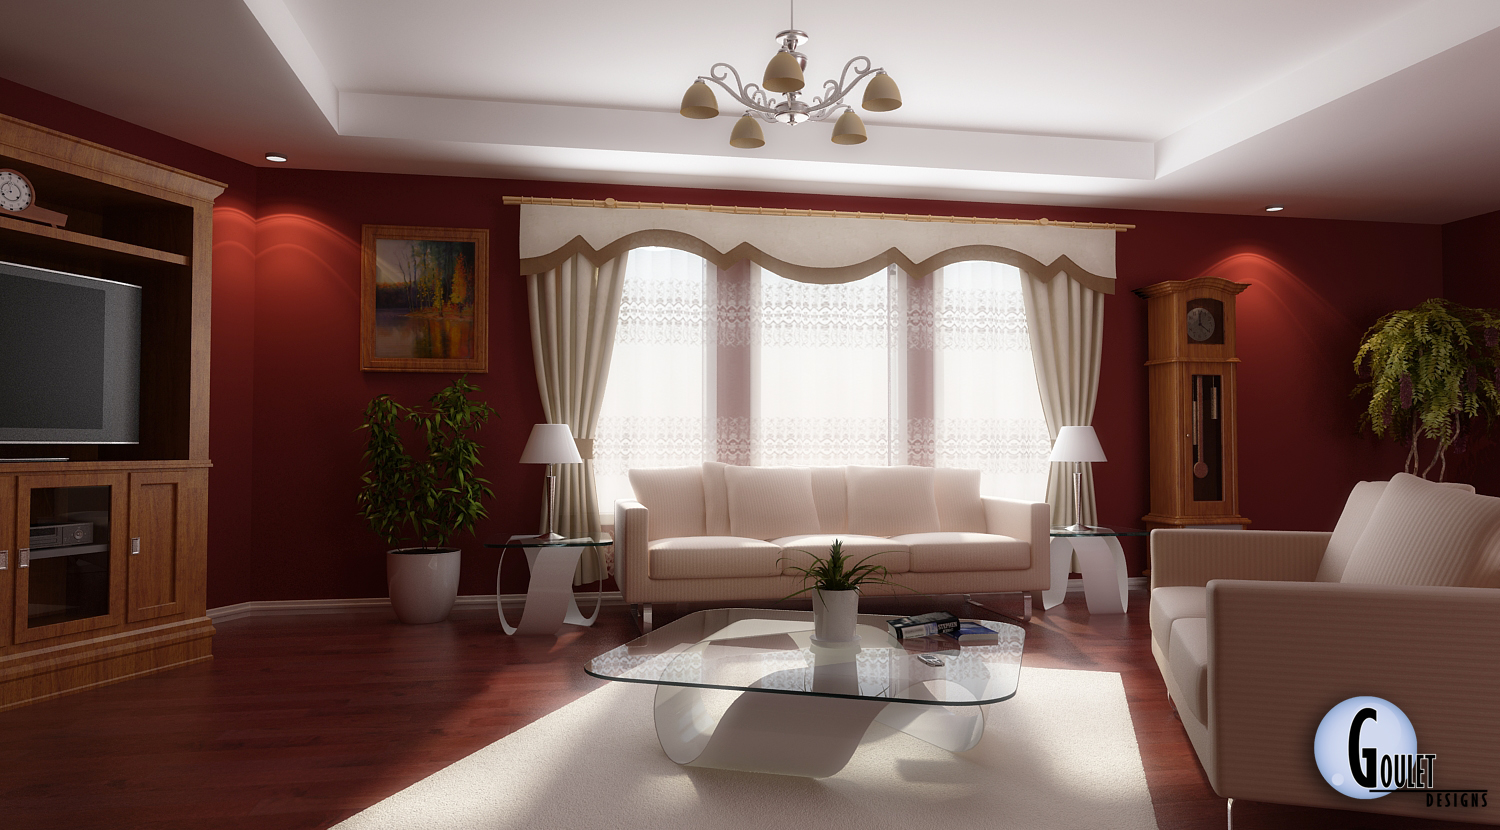 http://1.bp.blogspot.com/-kAEk7BfY6oc/TkwYjWdbJHI/AAAAAAAABuA/lxdecb6tioQ/s1600/red-and-white-living-room-design.jpg